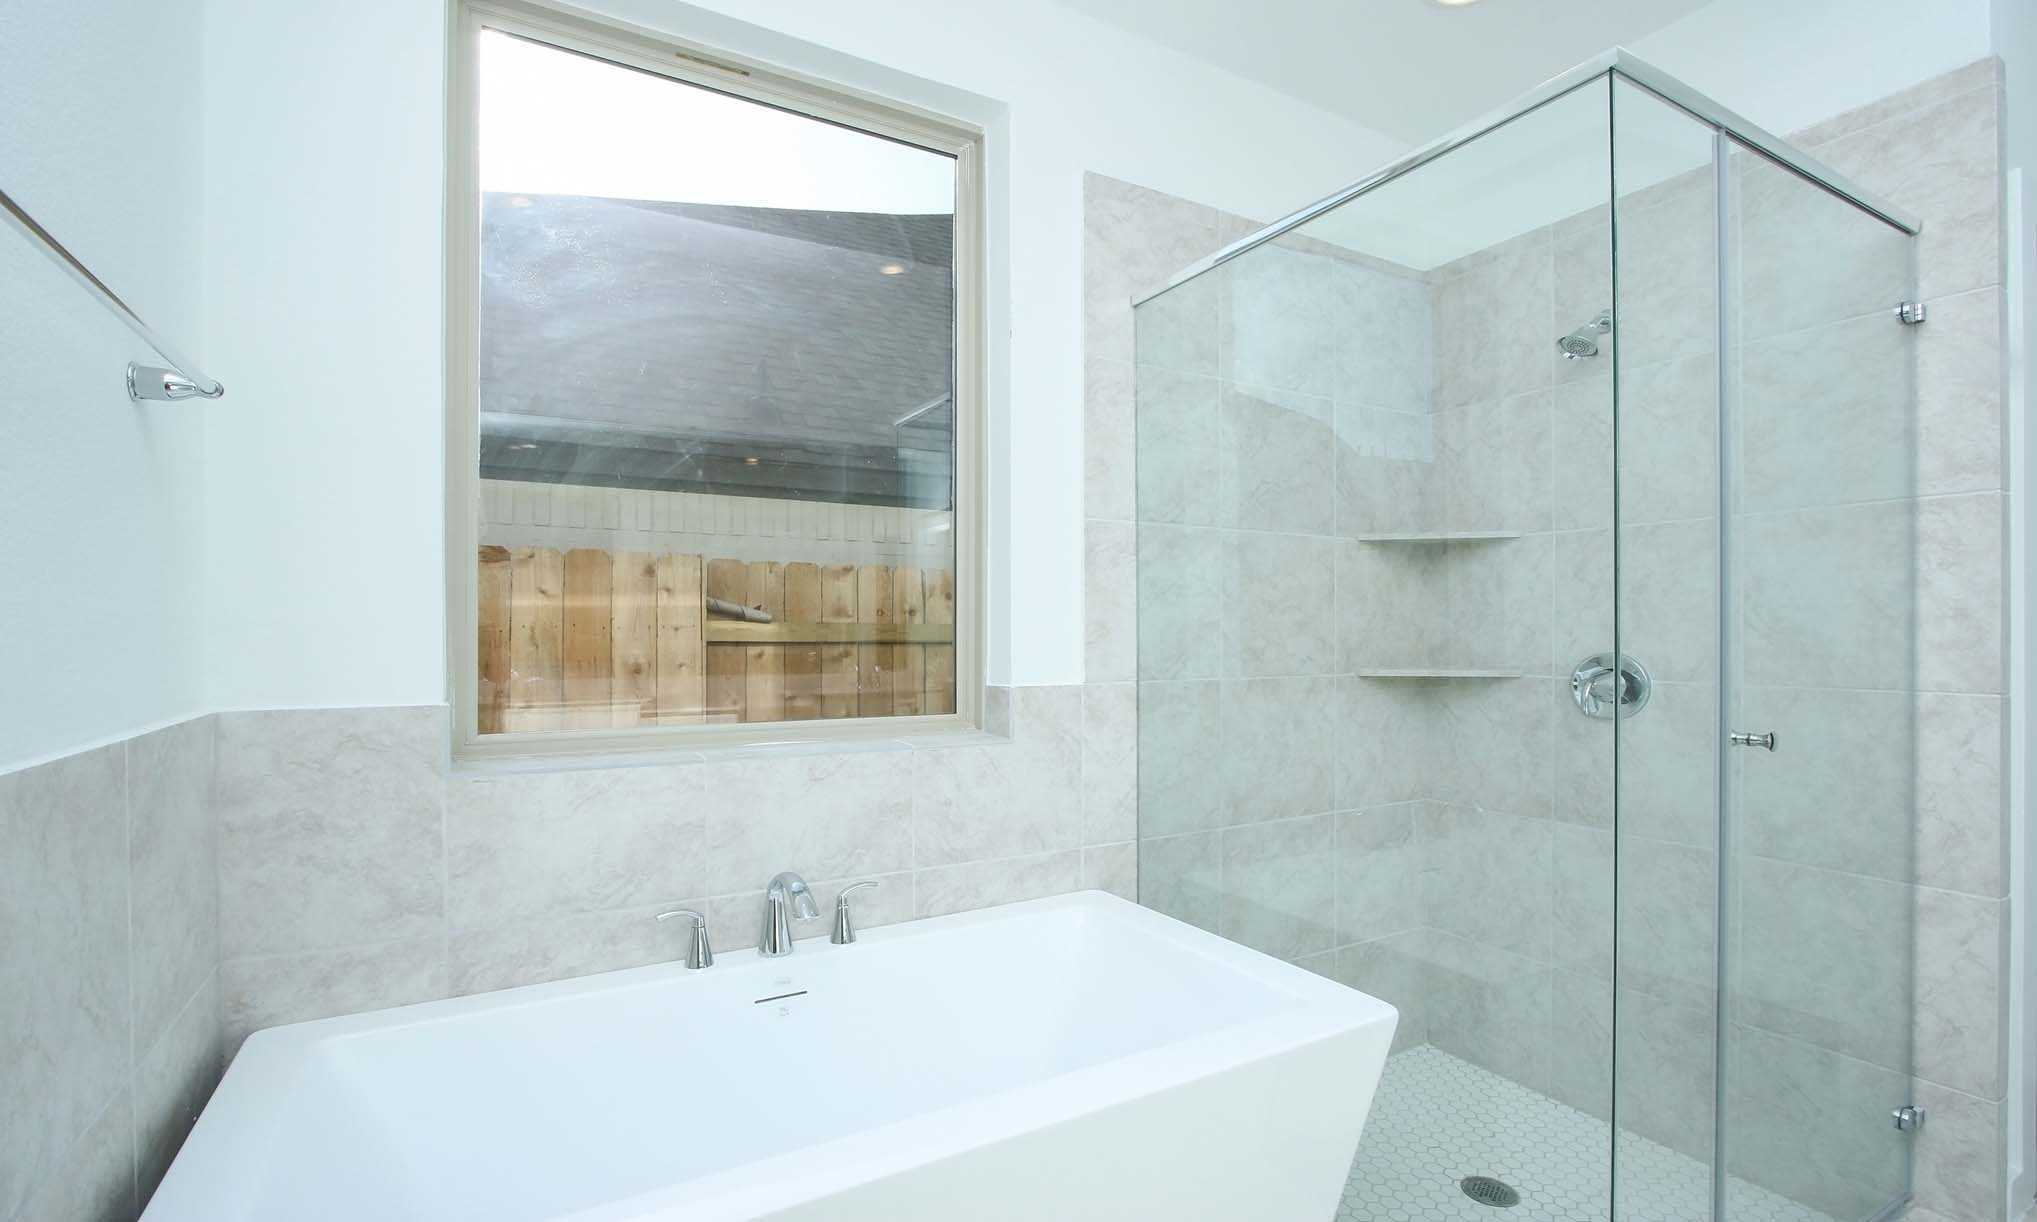 Bathroom featured in the Plan Oxford By Highland Homes in Houston, TX